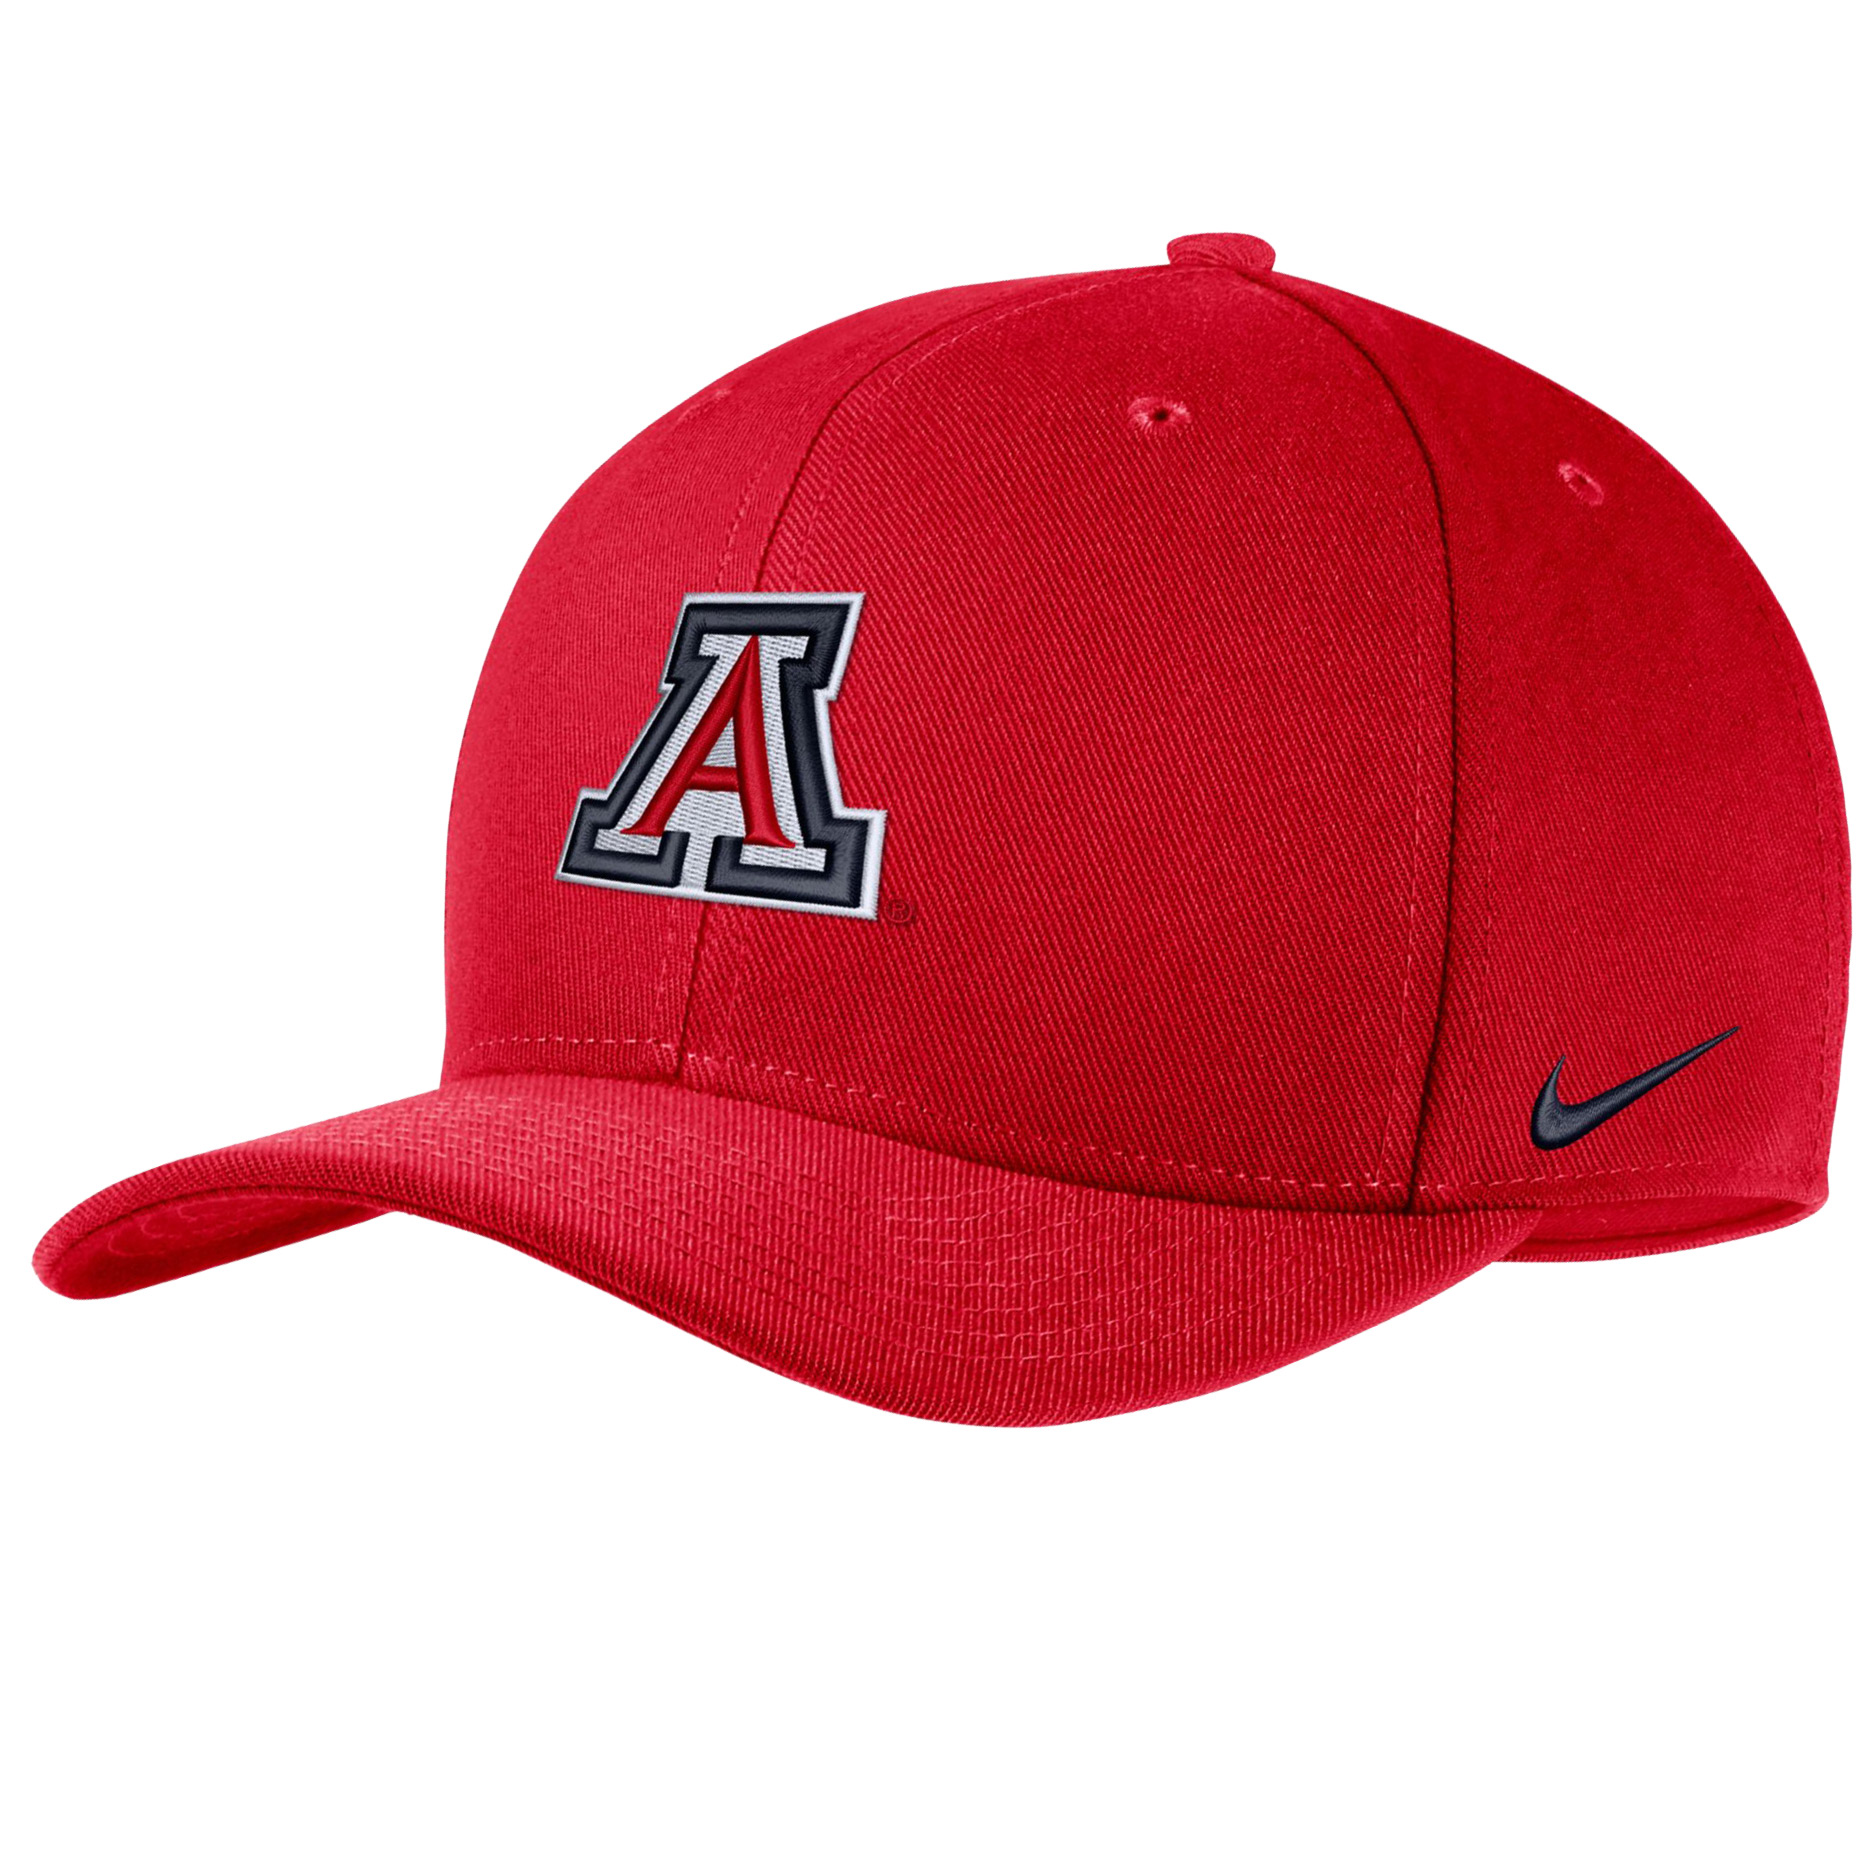 Image For Nike: Arizona Team Logo Classic99 Flex Cap - Red